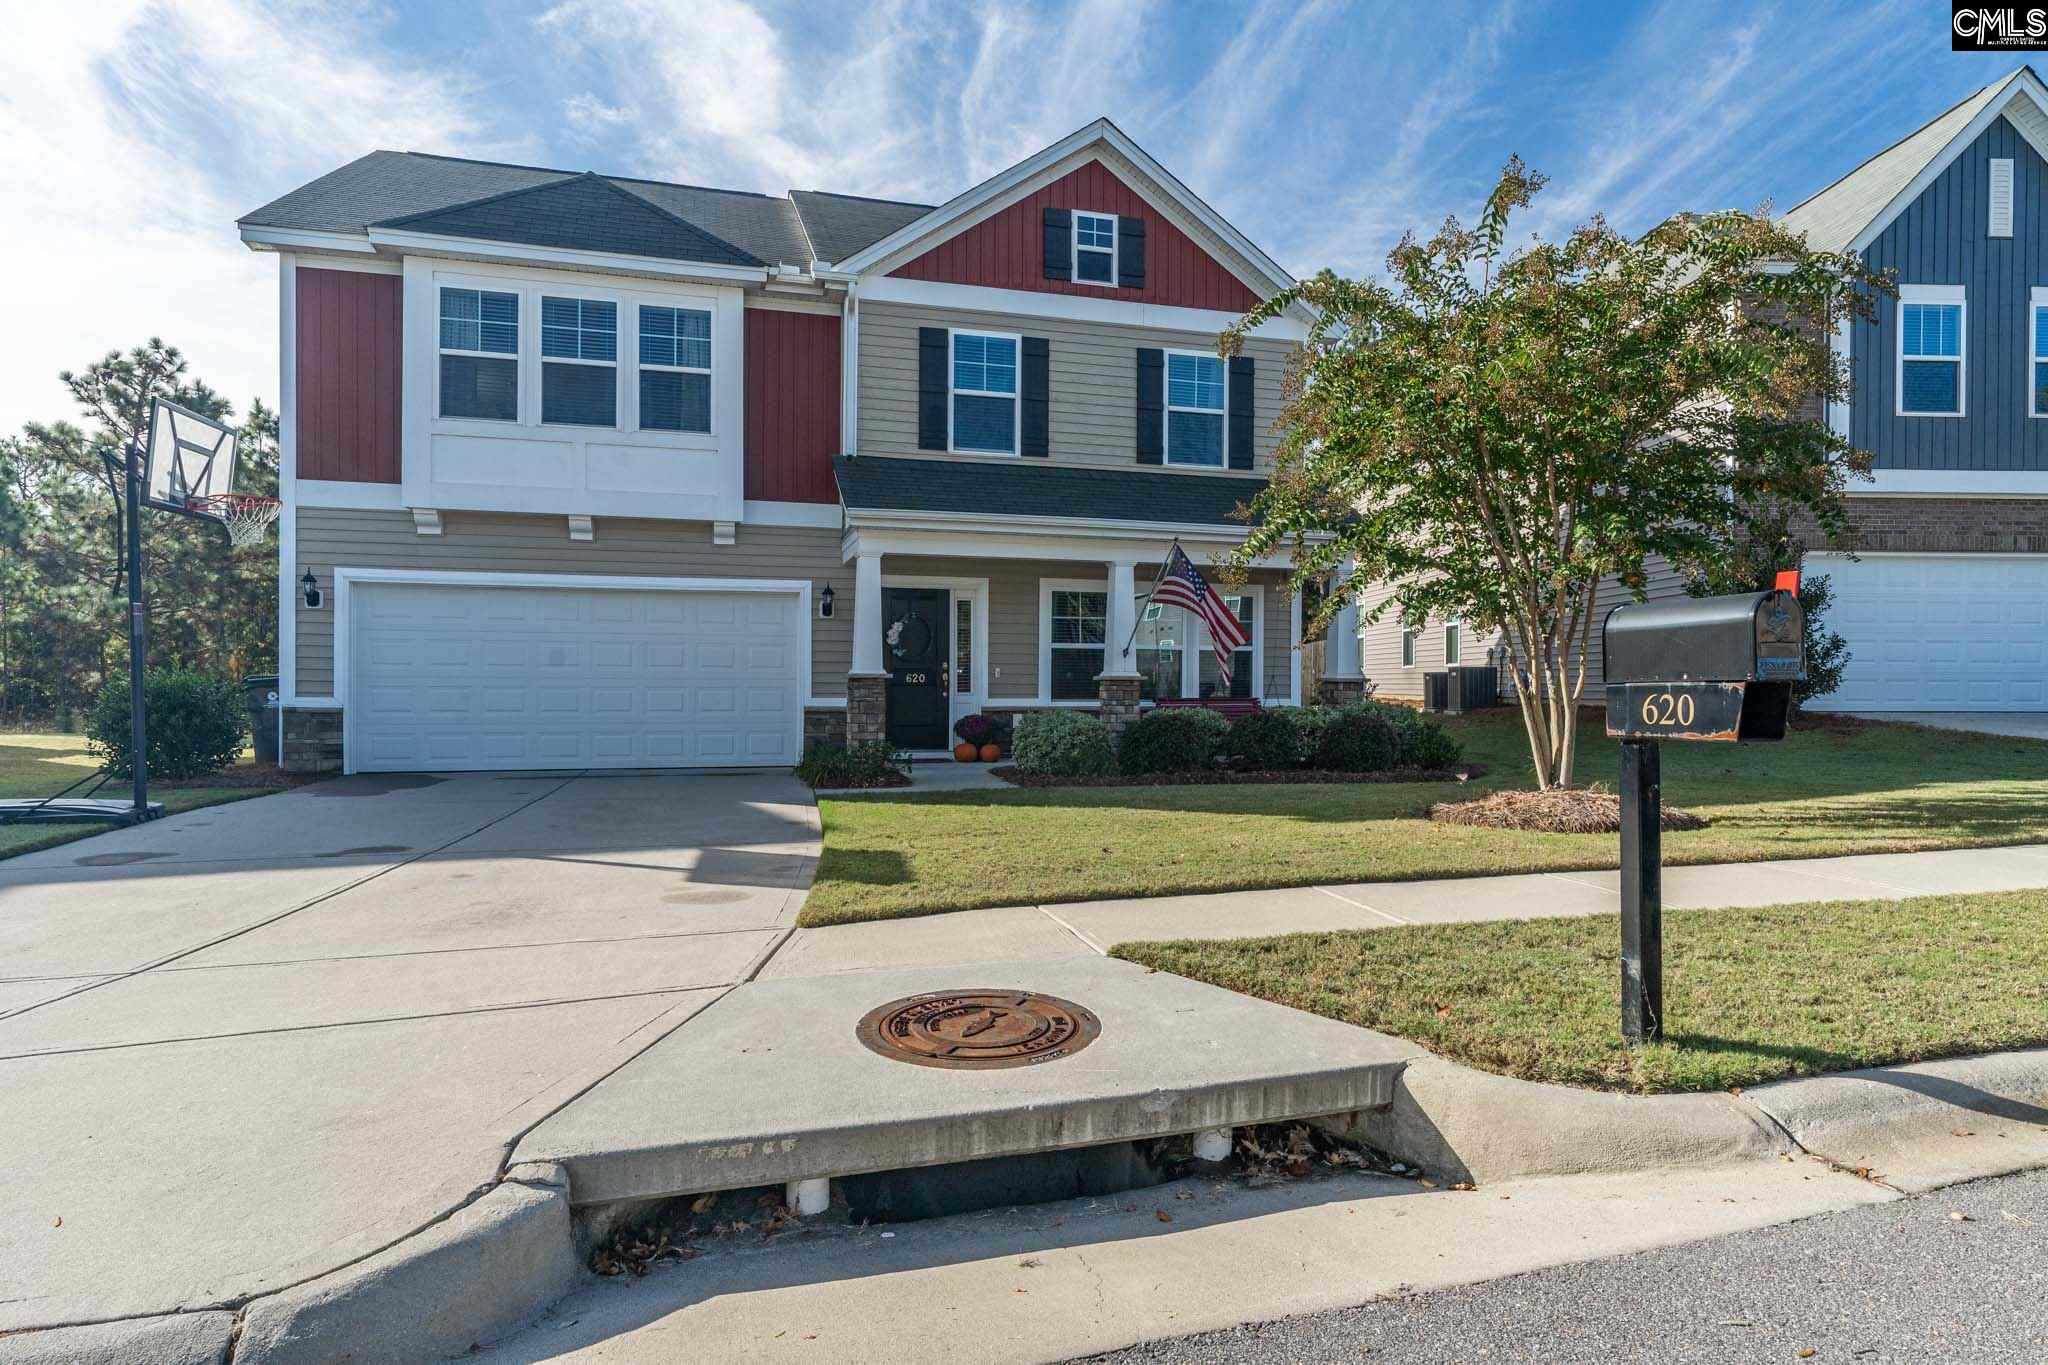 620 Blue Ledge Lexington, SC 29072-8368